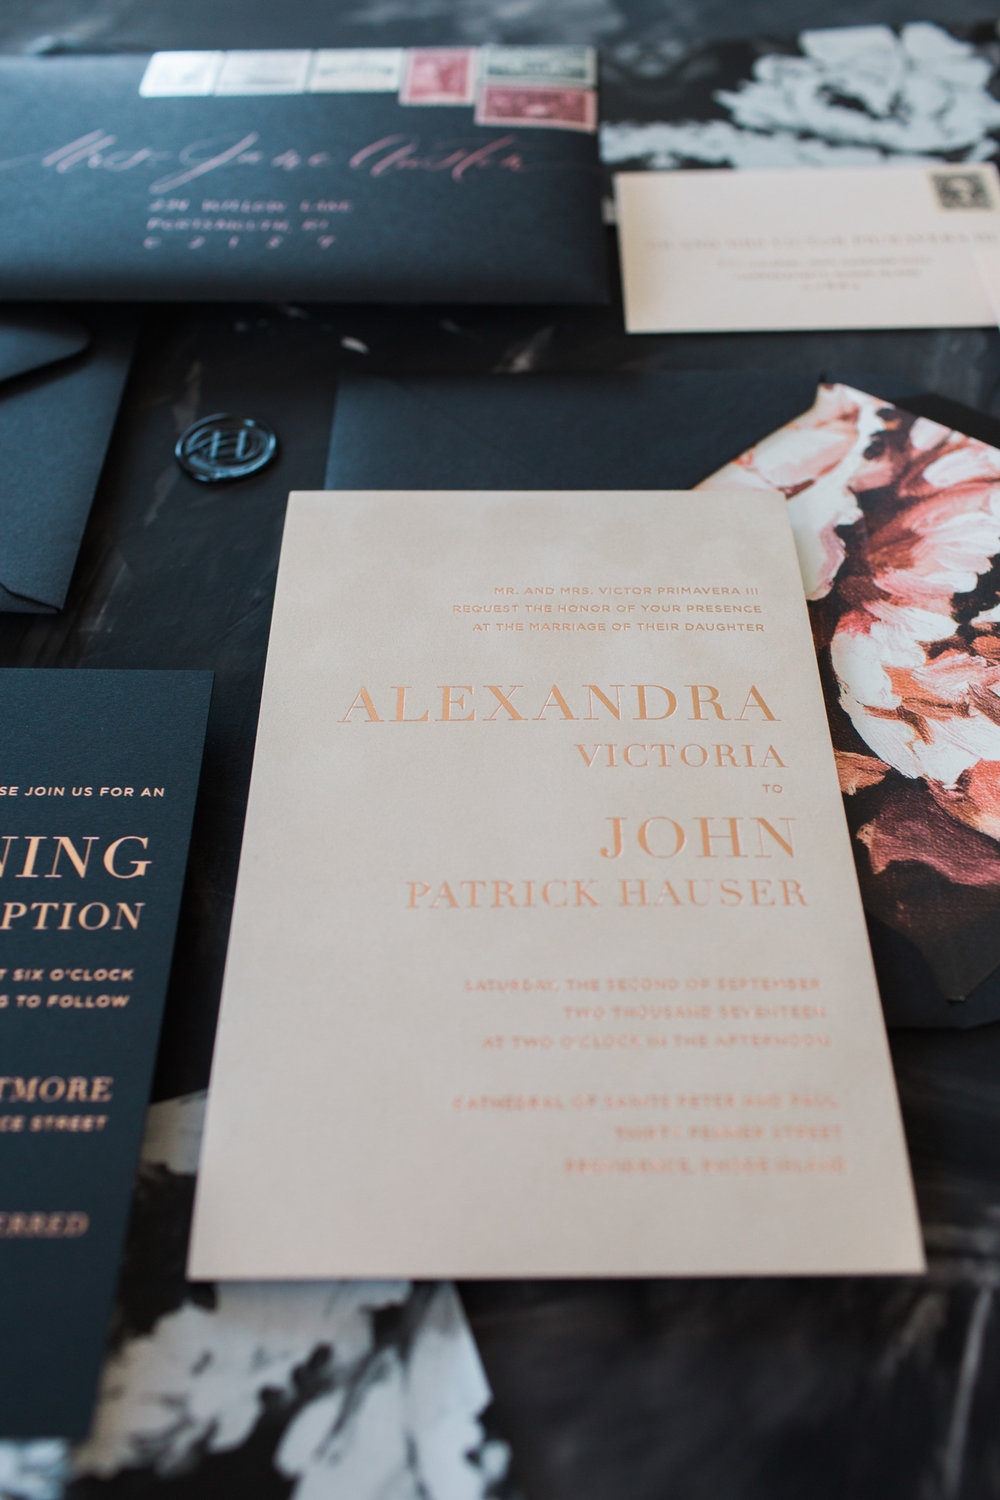 AP_Wedding_Invites_Rose-Gold-Foil-Newport-Moody-Floral-Invitations-champagne-and-ink-Molly-Lo-2.jpg